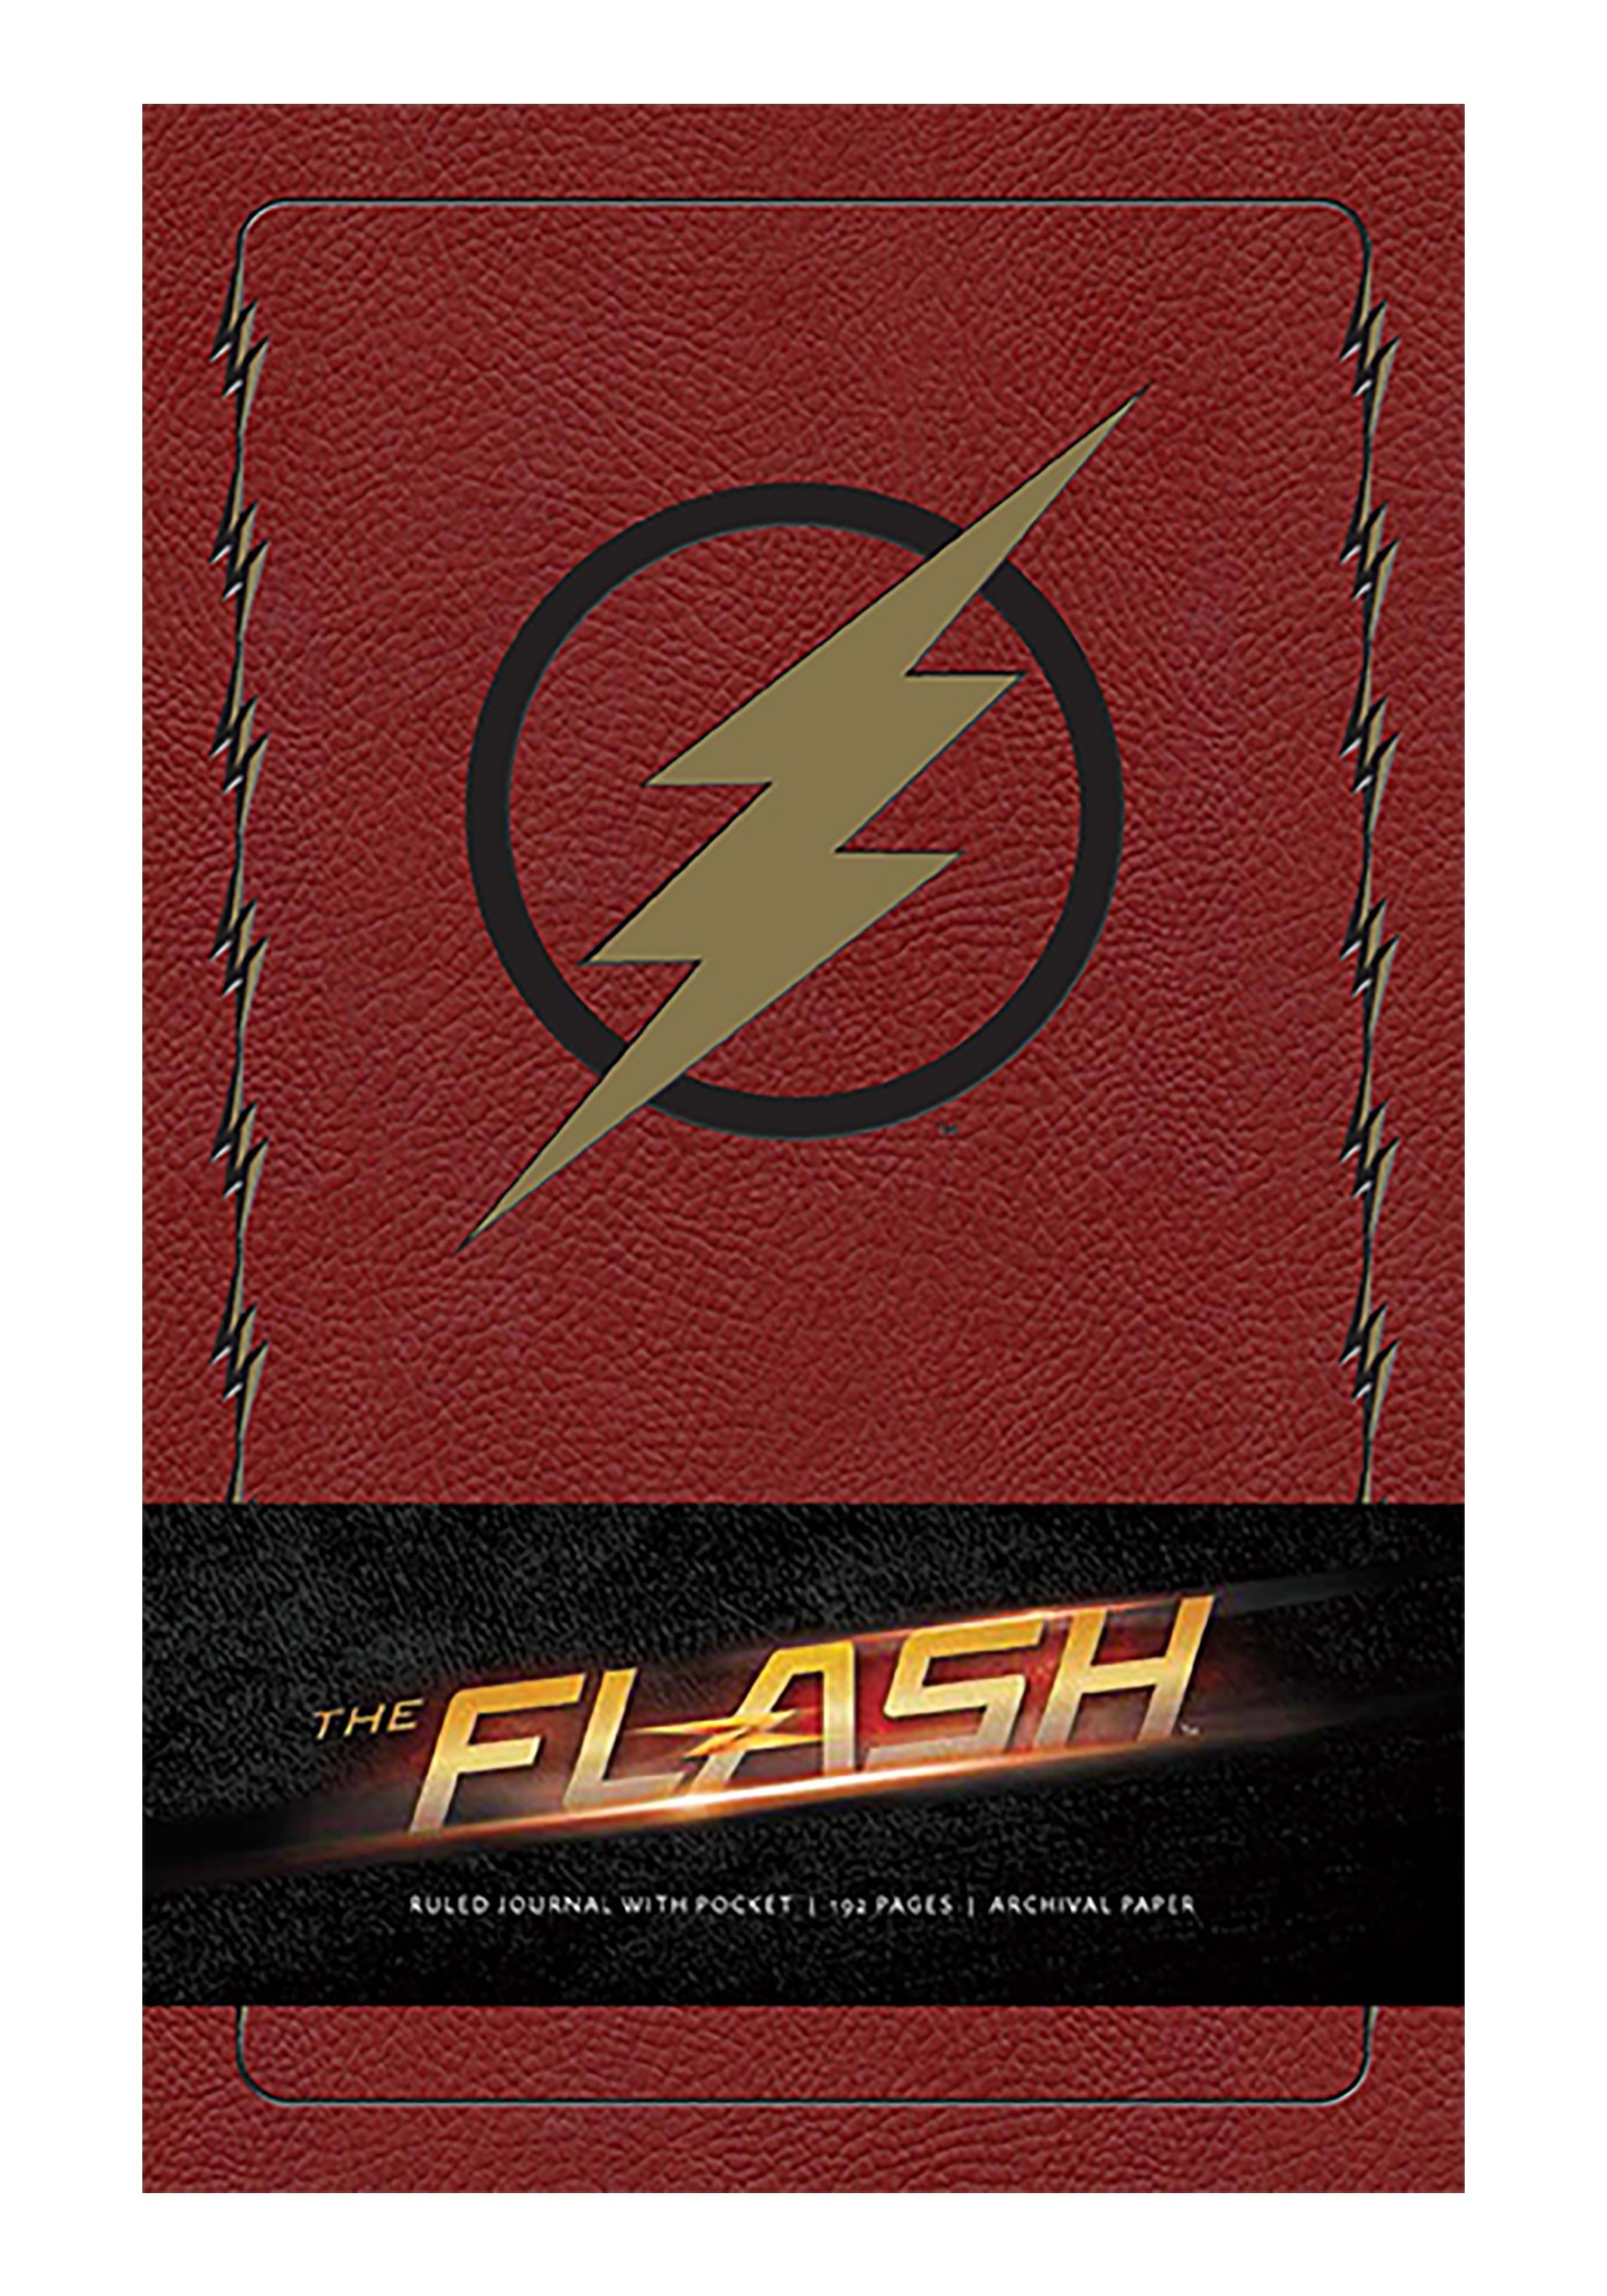 Hardcover Ruled Journal The Flash